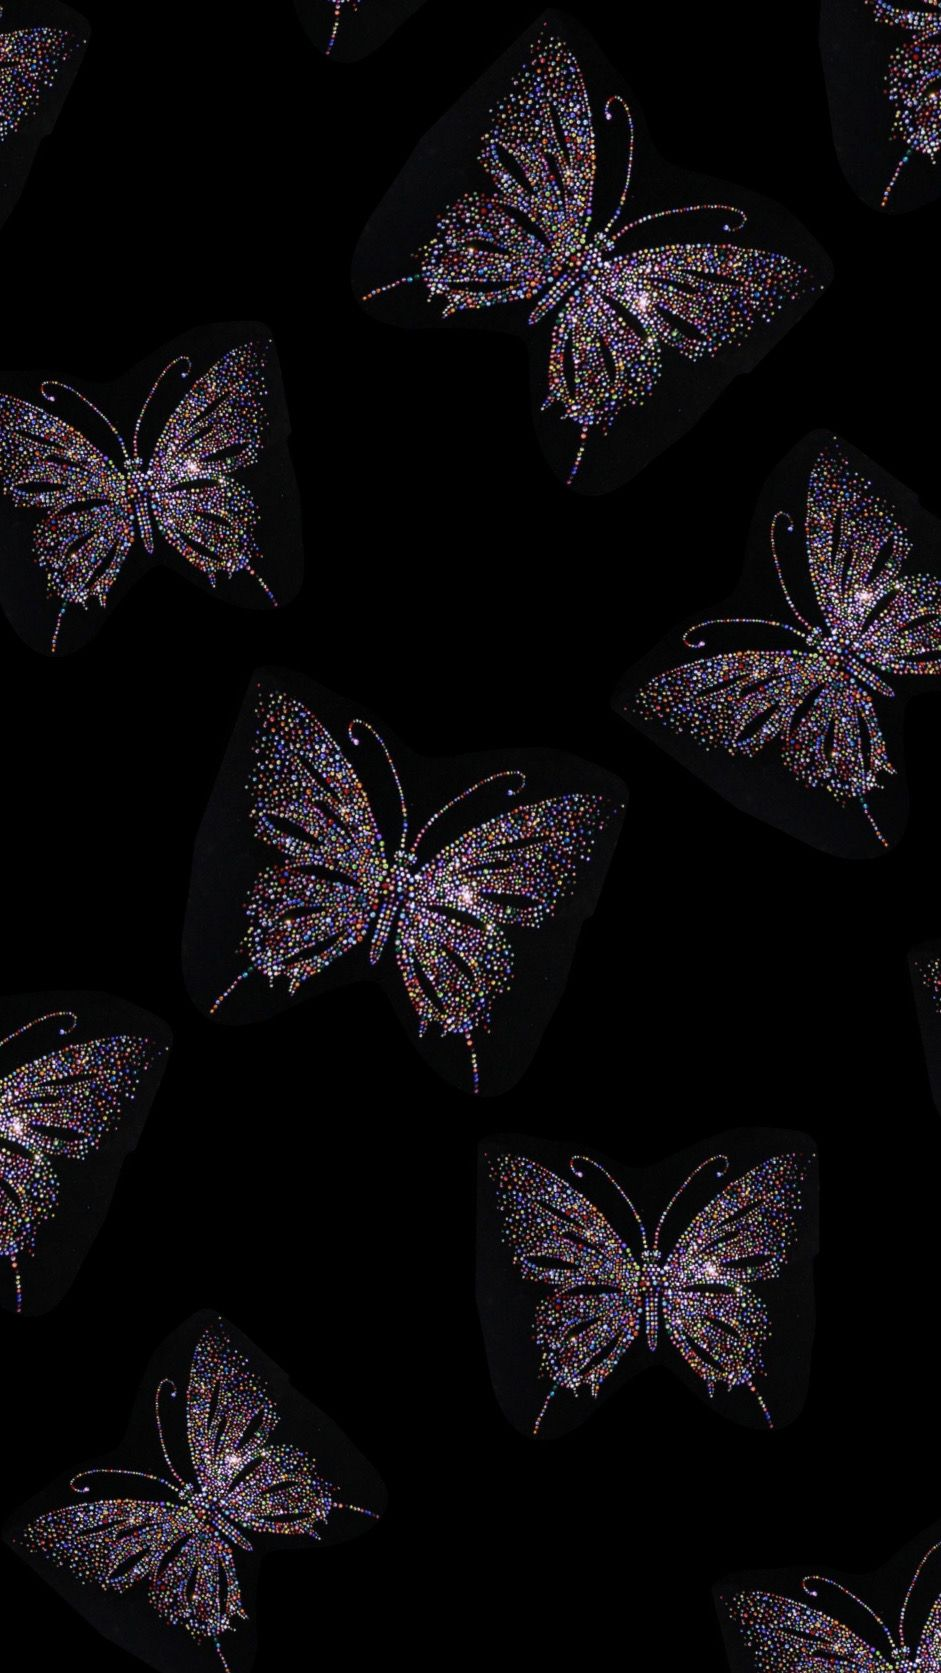 Wallpaper By Artist Unknown Butterfly Wallpaper Iphone Cellphone Wallpaper Butterfly Wallpaper